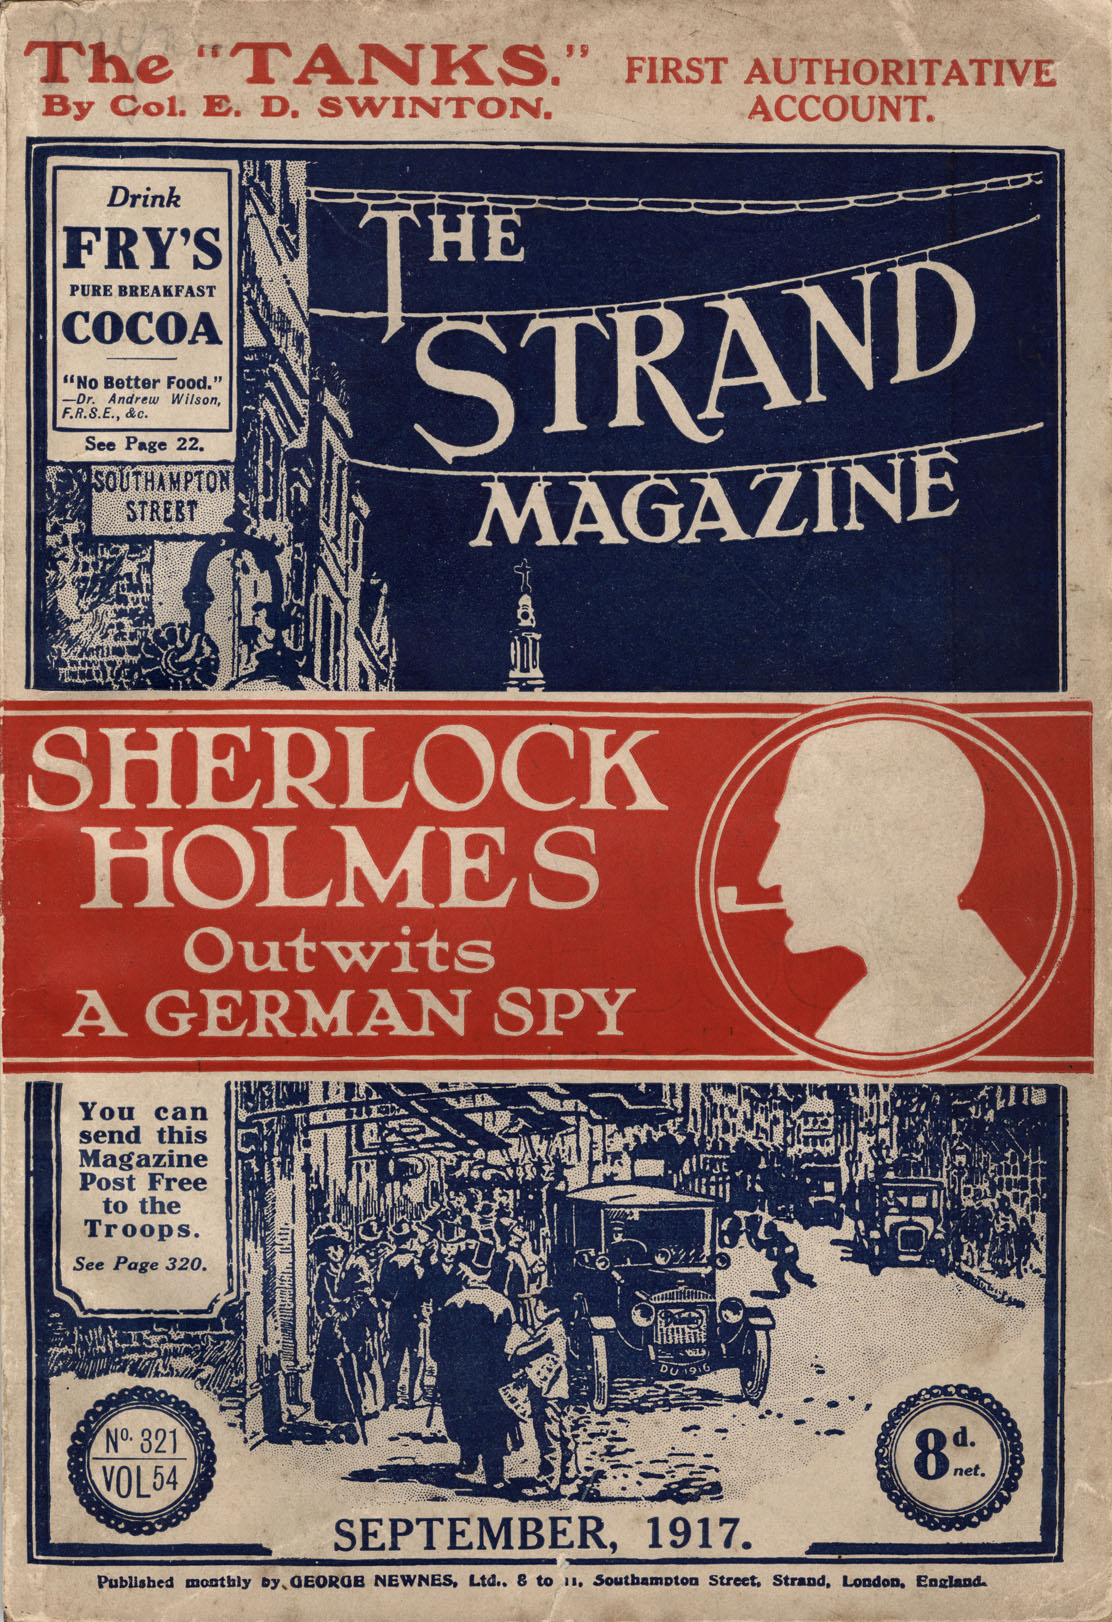 The Strand Magazine (cover), vol. 65, no. 321, September 1917.jpg